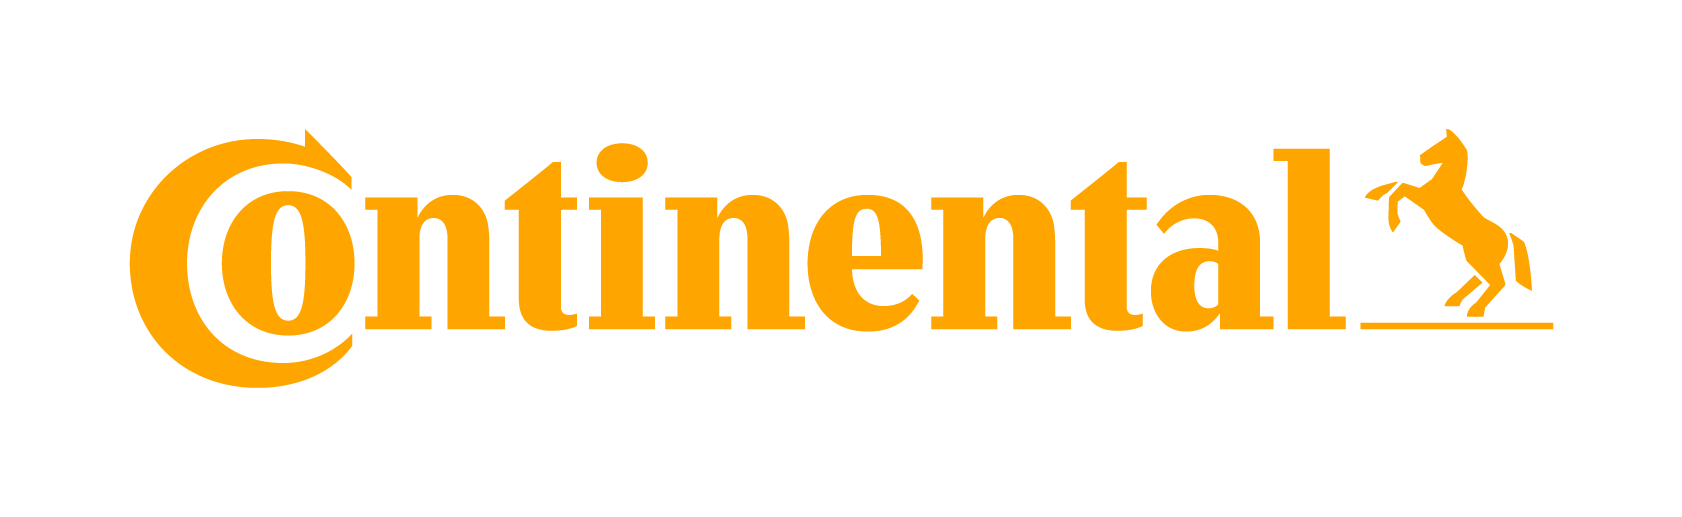 continental logo yellow srgb png-data